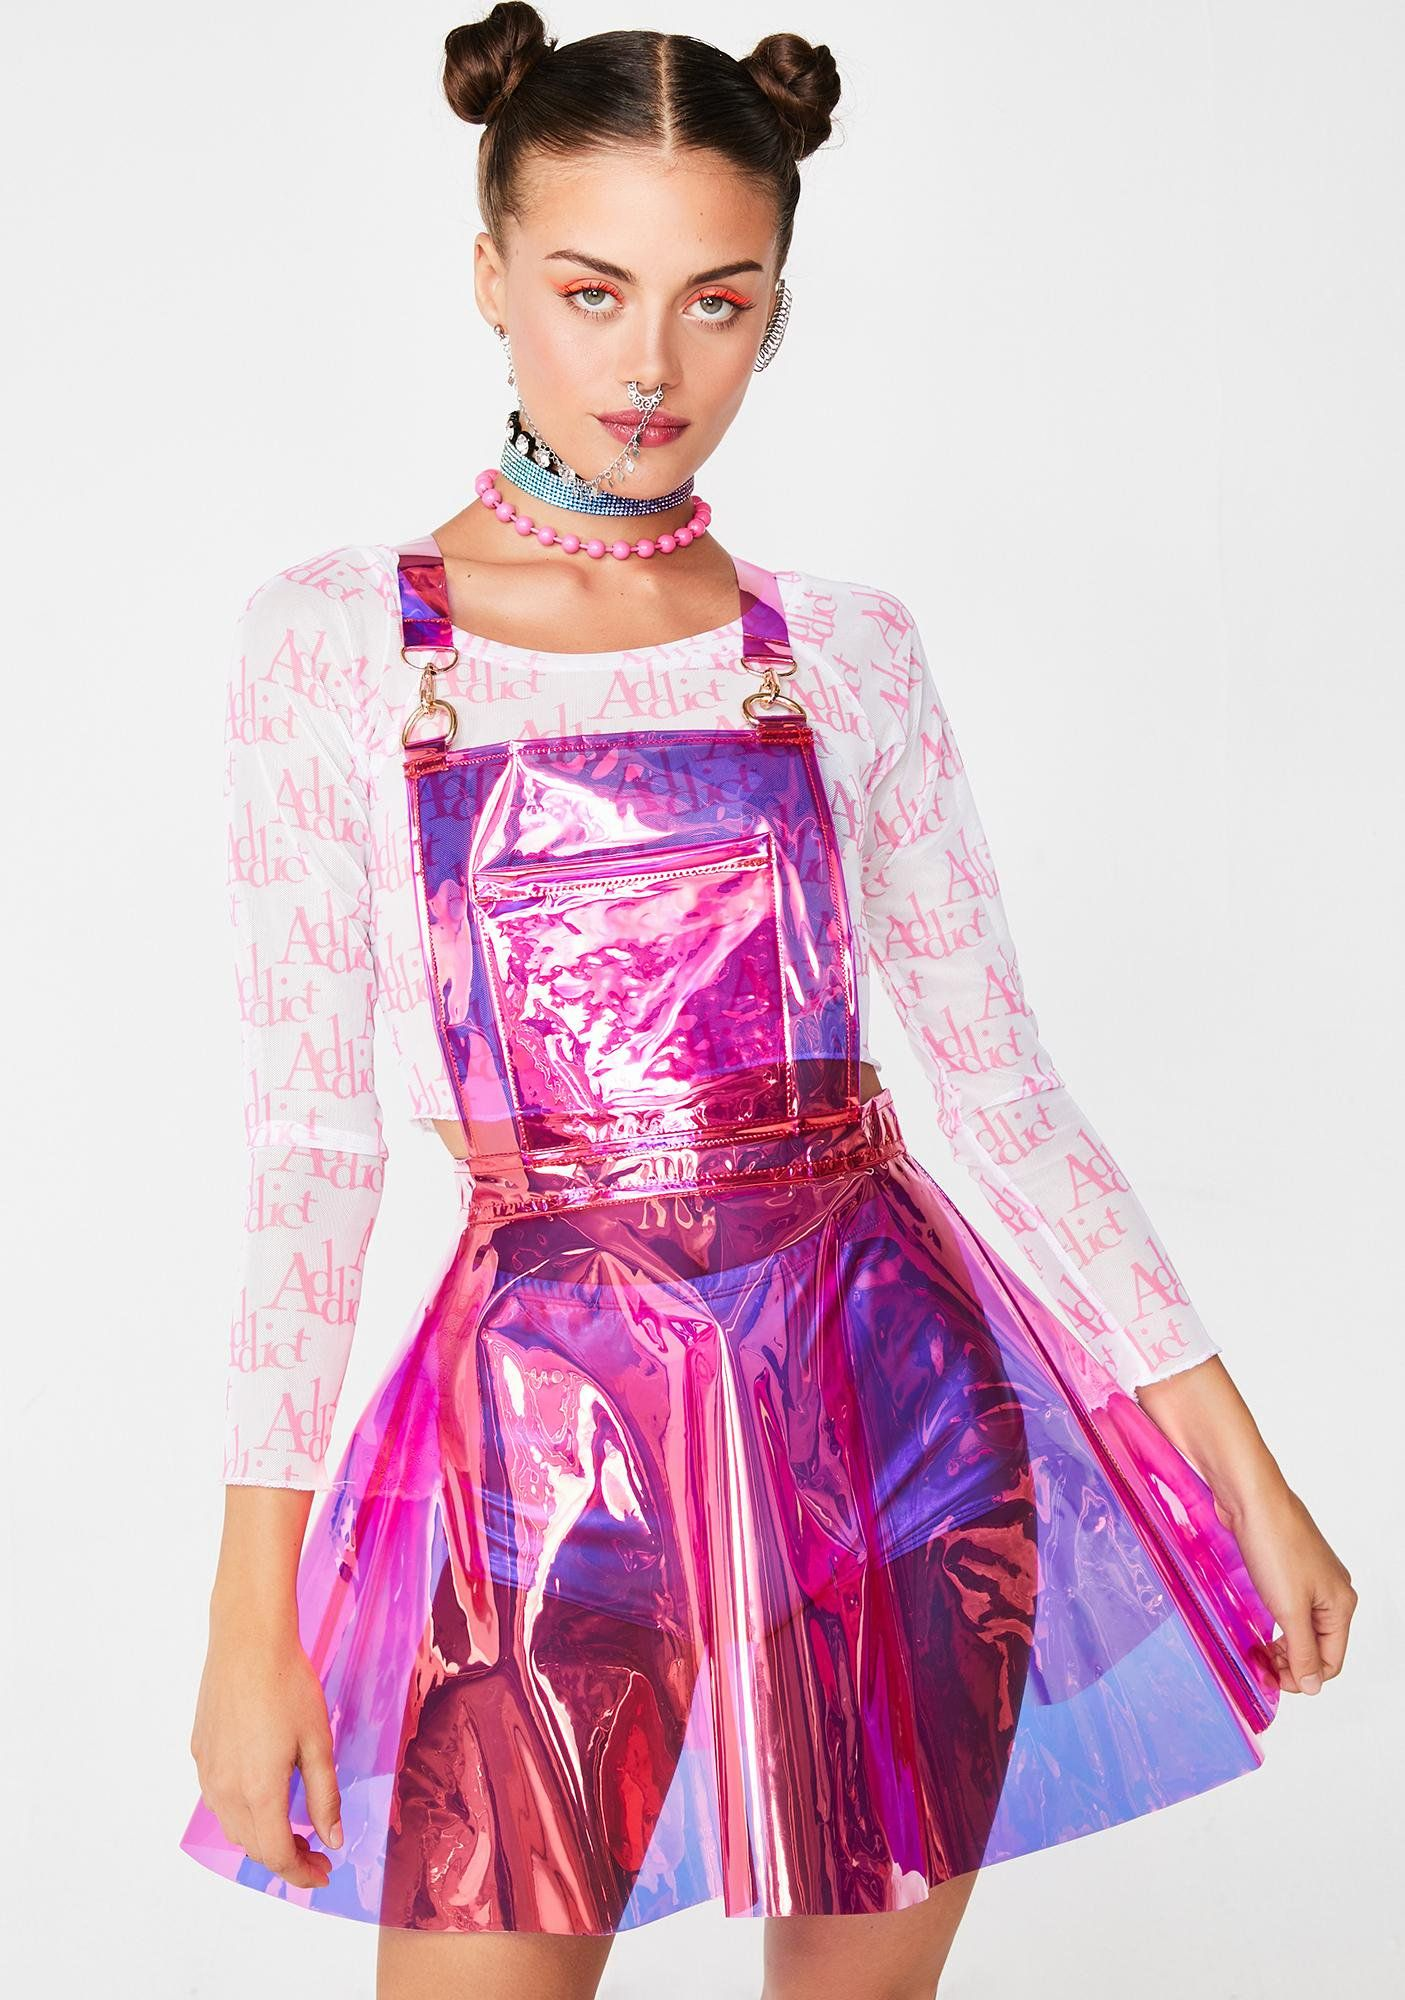 66172fee49c Club Exx Candy Gurl Hologram Overall Dress will have you walkin  on the  moon. Look like ur in outer space in this sikk hologram PVC overall dress  that has a ...